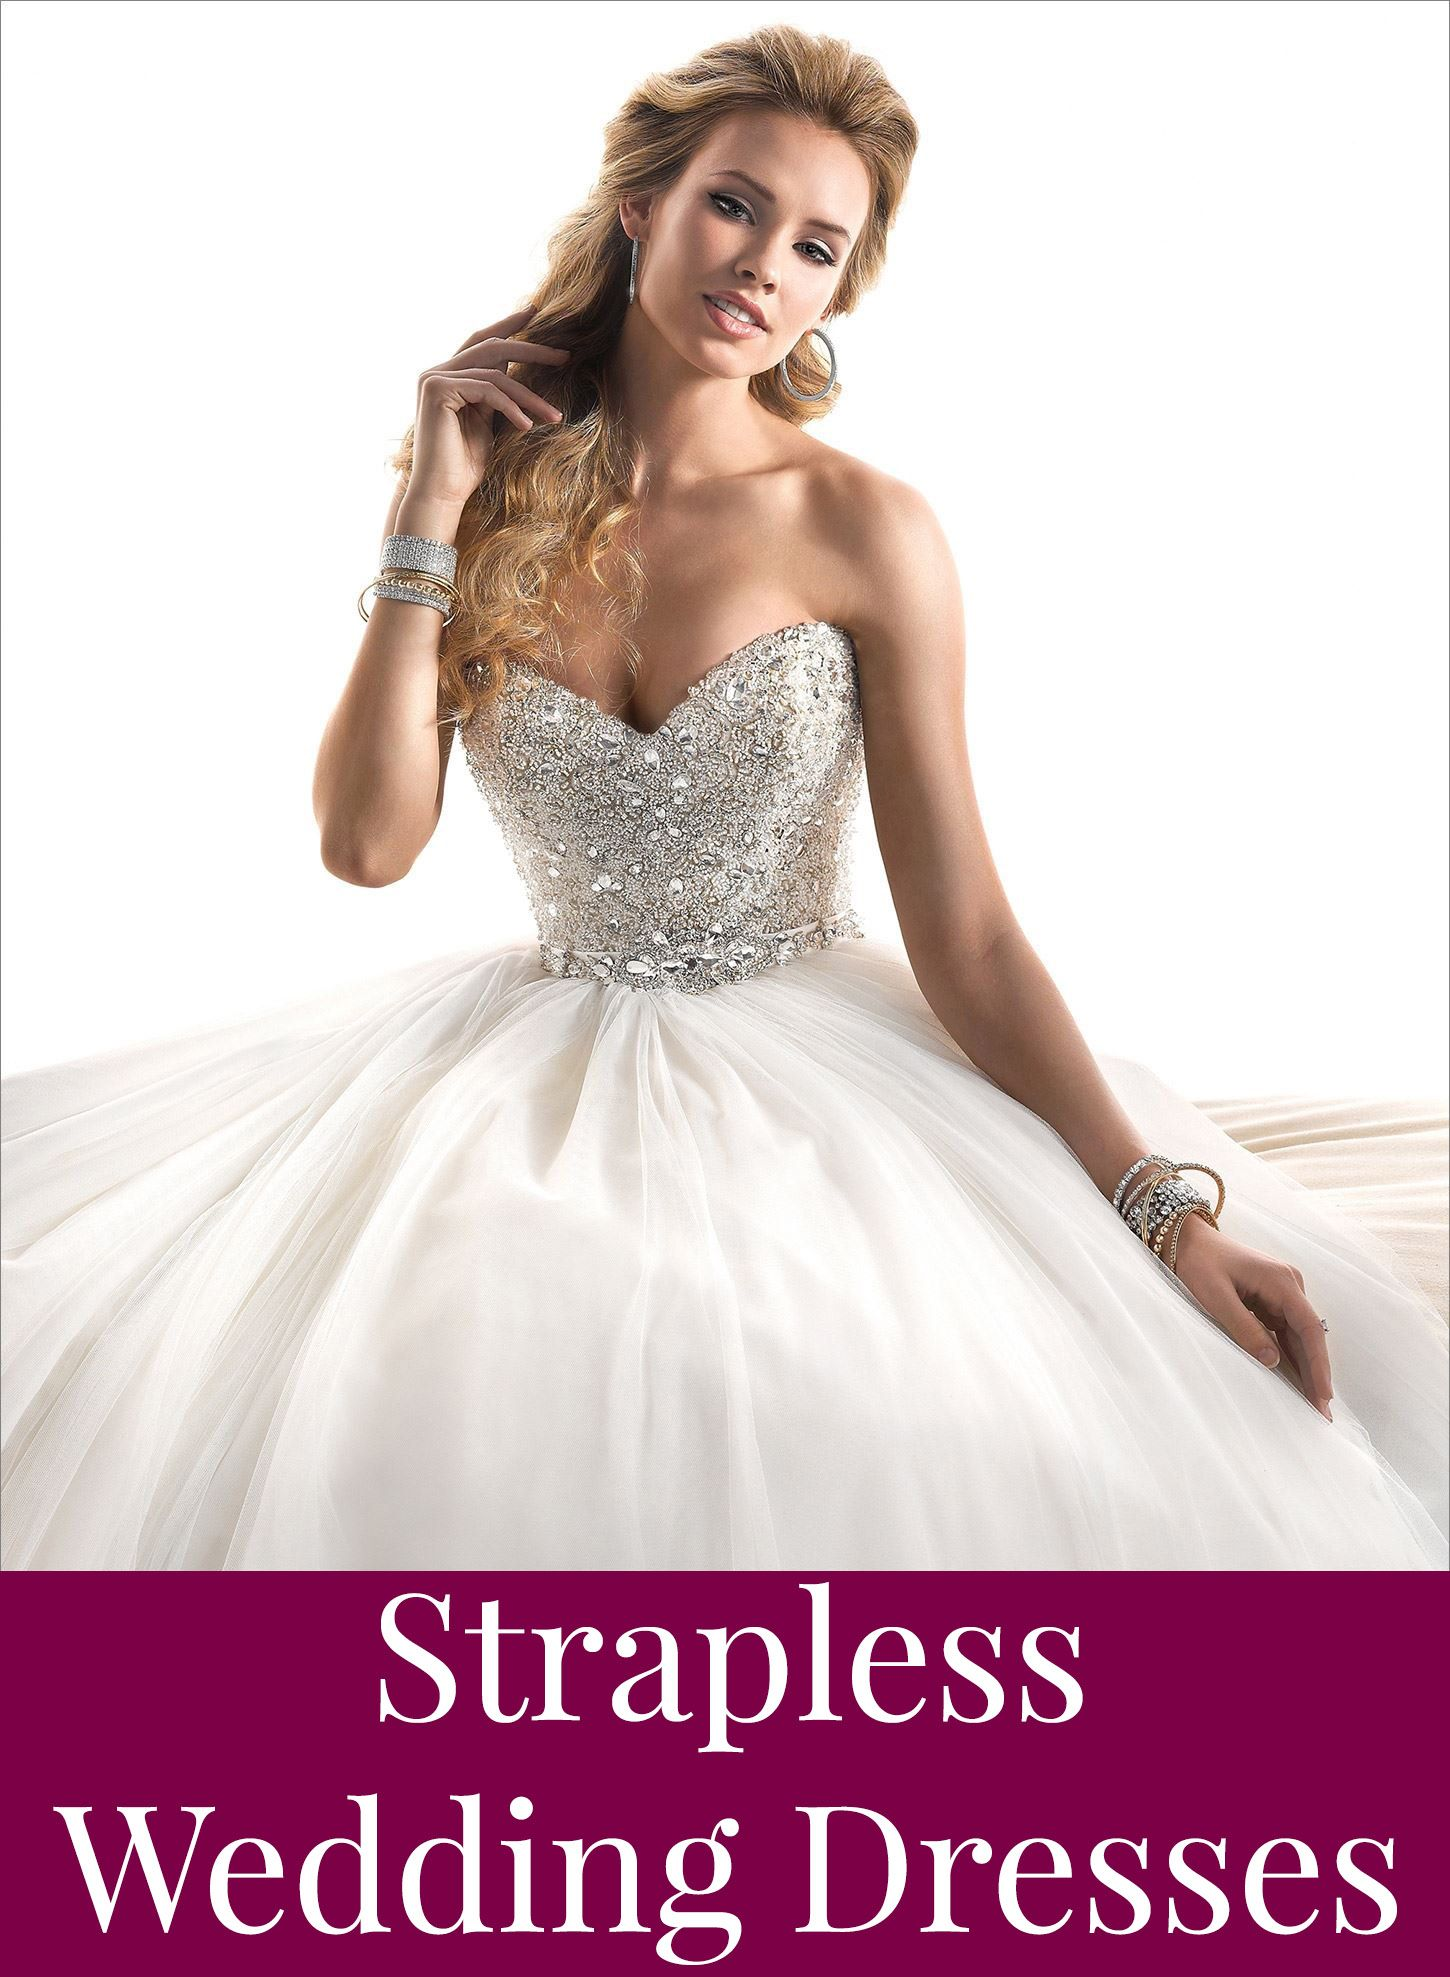 Find the right strapless wedding dress for you!